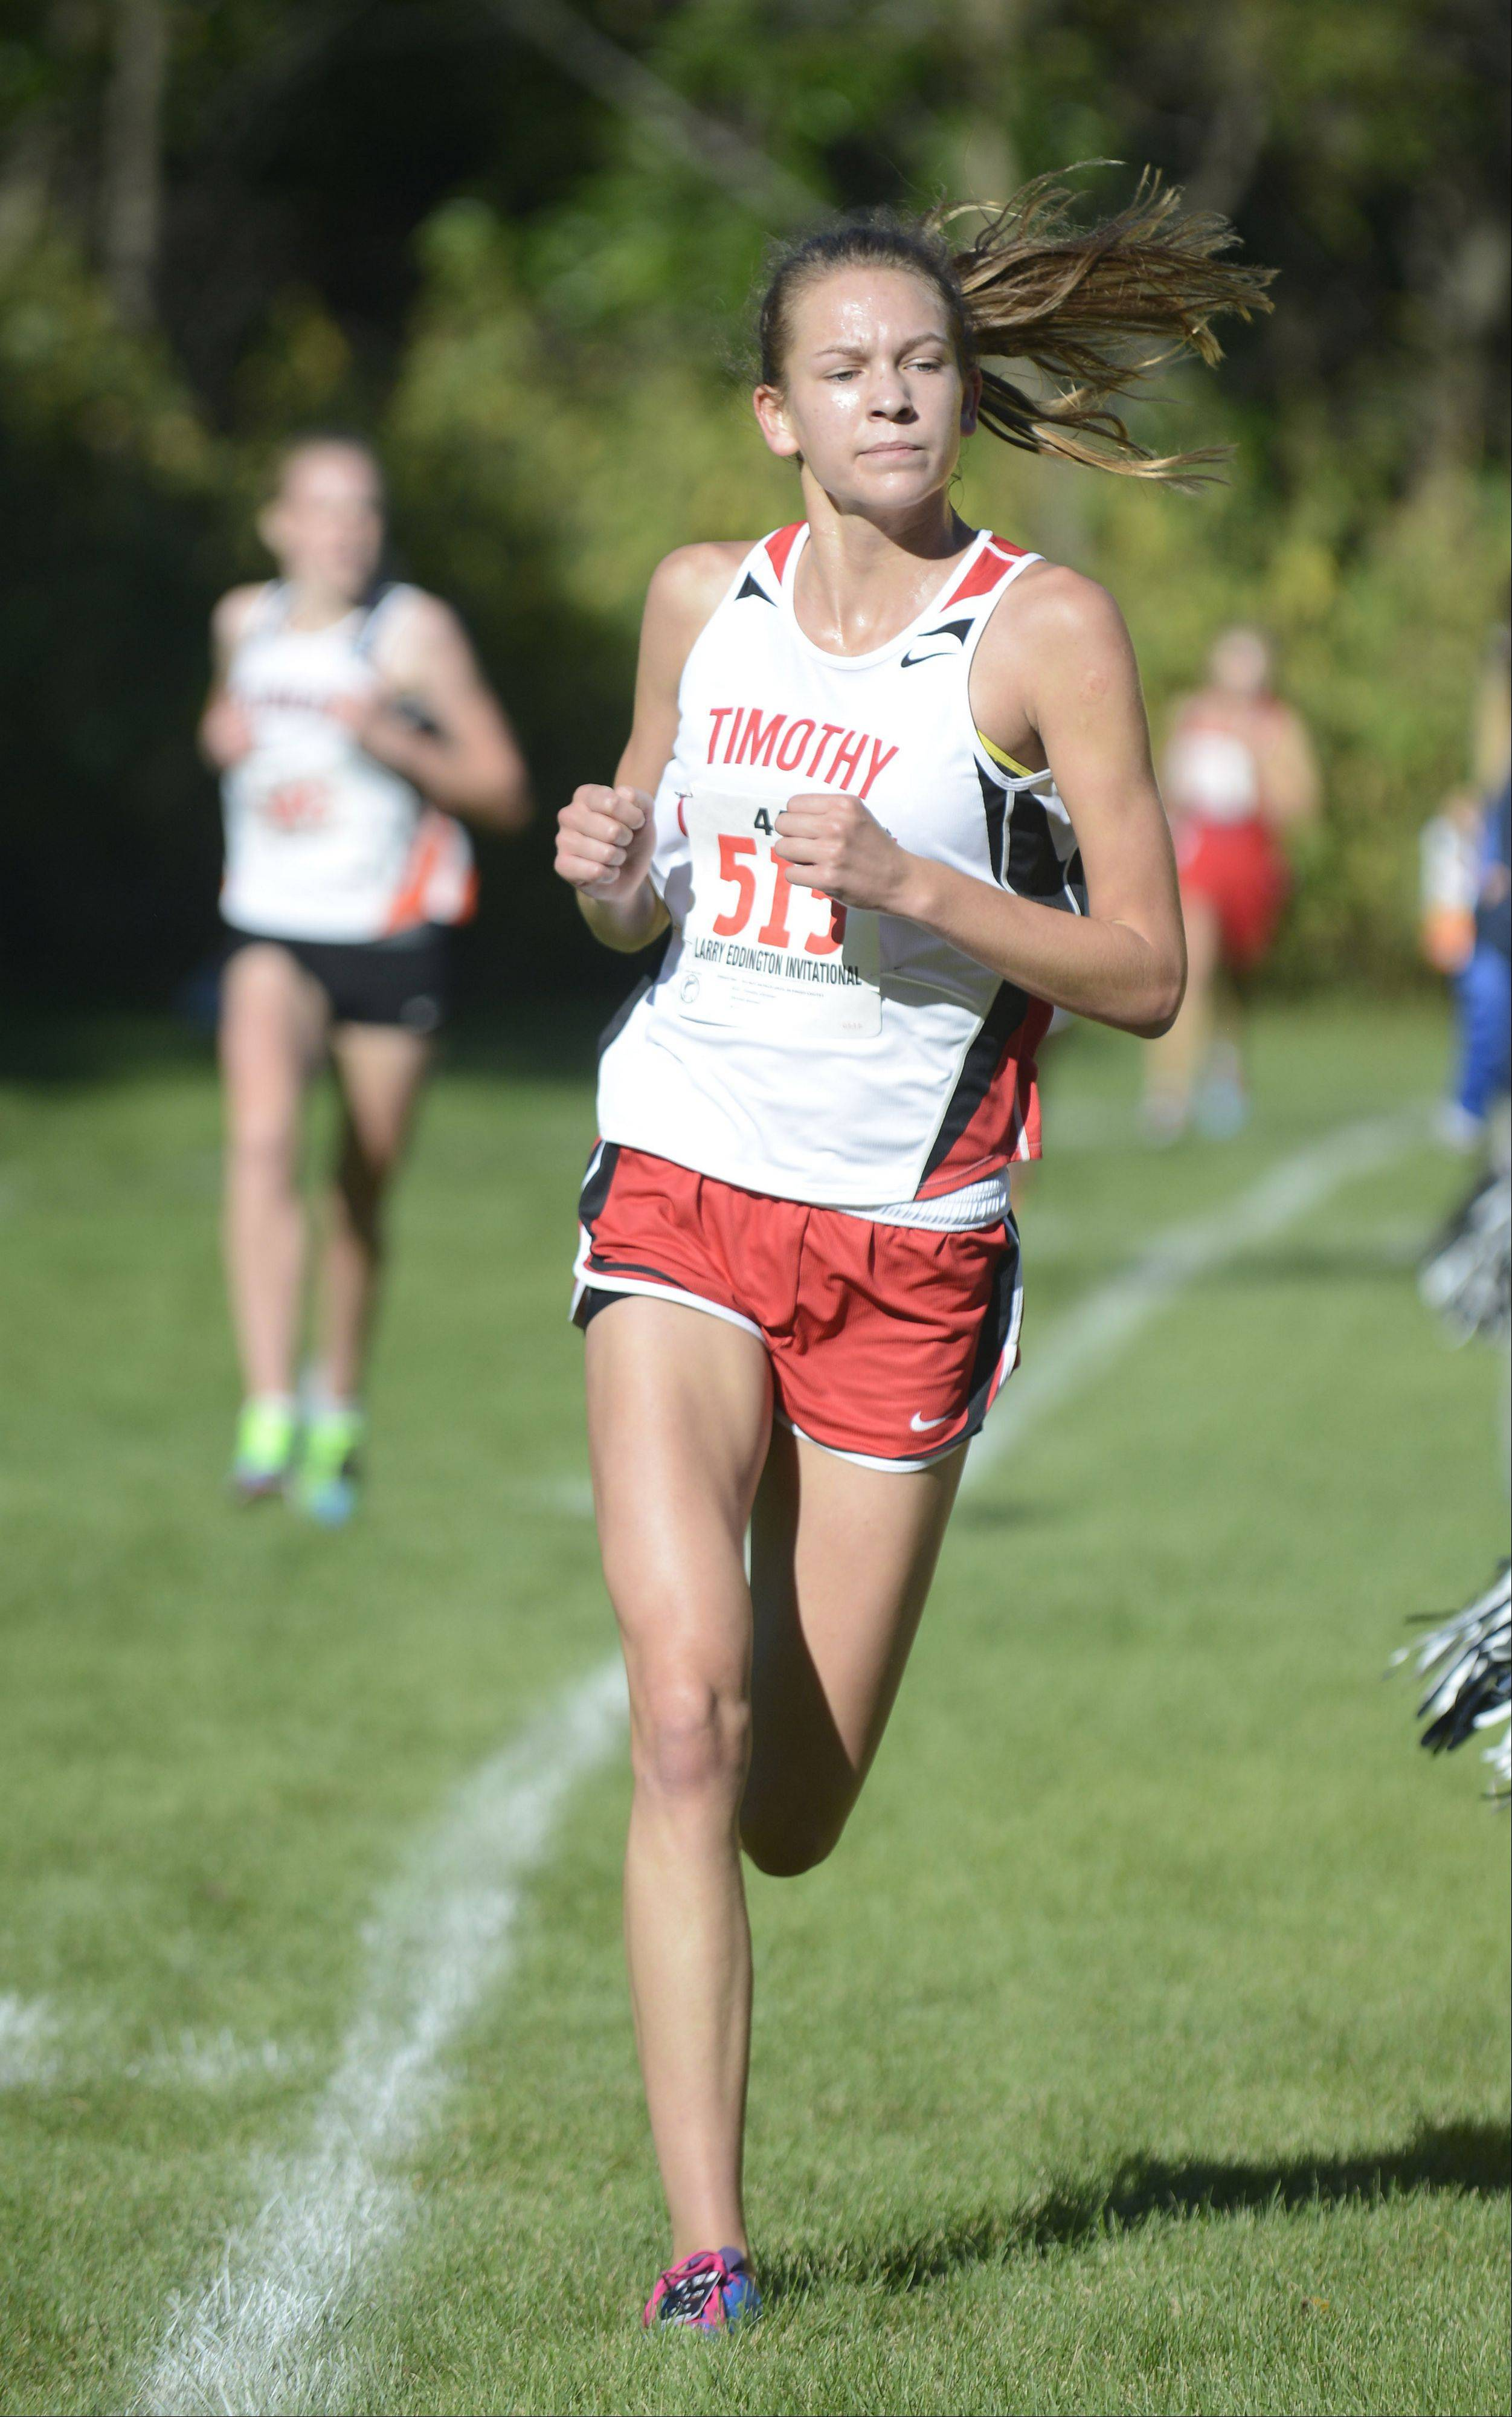 Timothy Christian's Hannah Bosman comes in first for her team and 20th place overall at the Kaneland Invitational cross country meet in Elburn on Saturday, September 21.